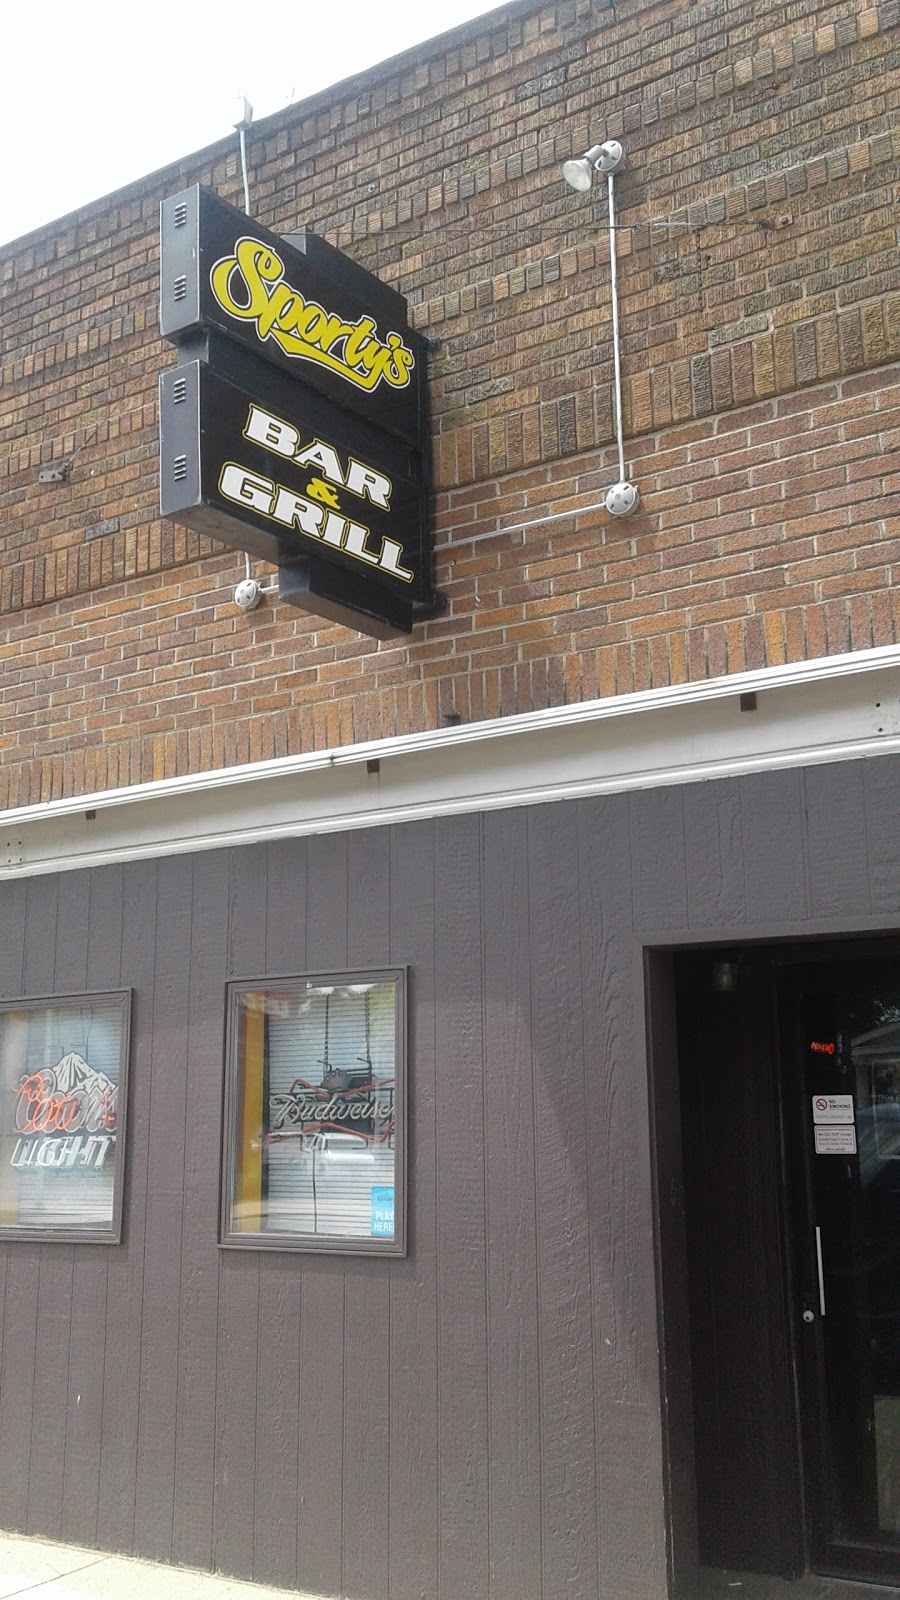 Sportys Bar & Grill | restaurant | 117 S Story St, Rock Rapids, IA 51246, USA | 7124729629 OR +1 712-472-9629